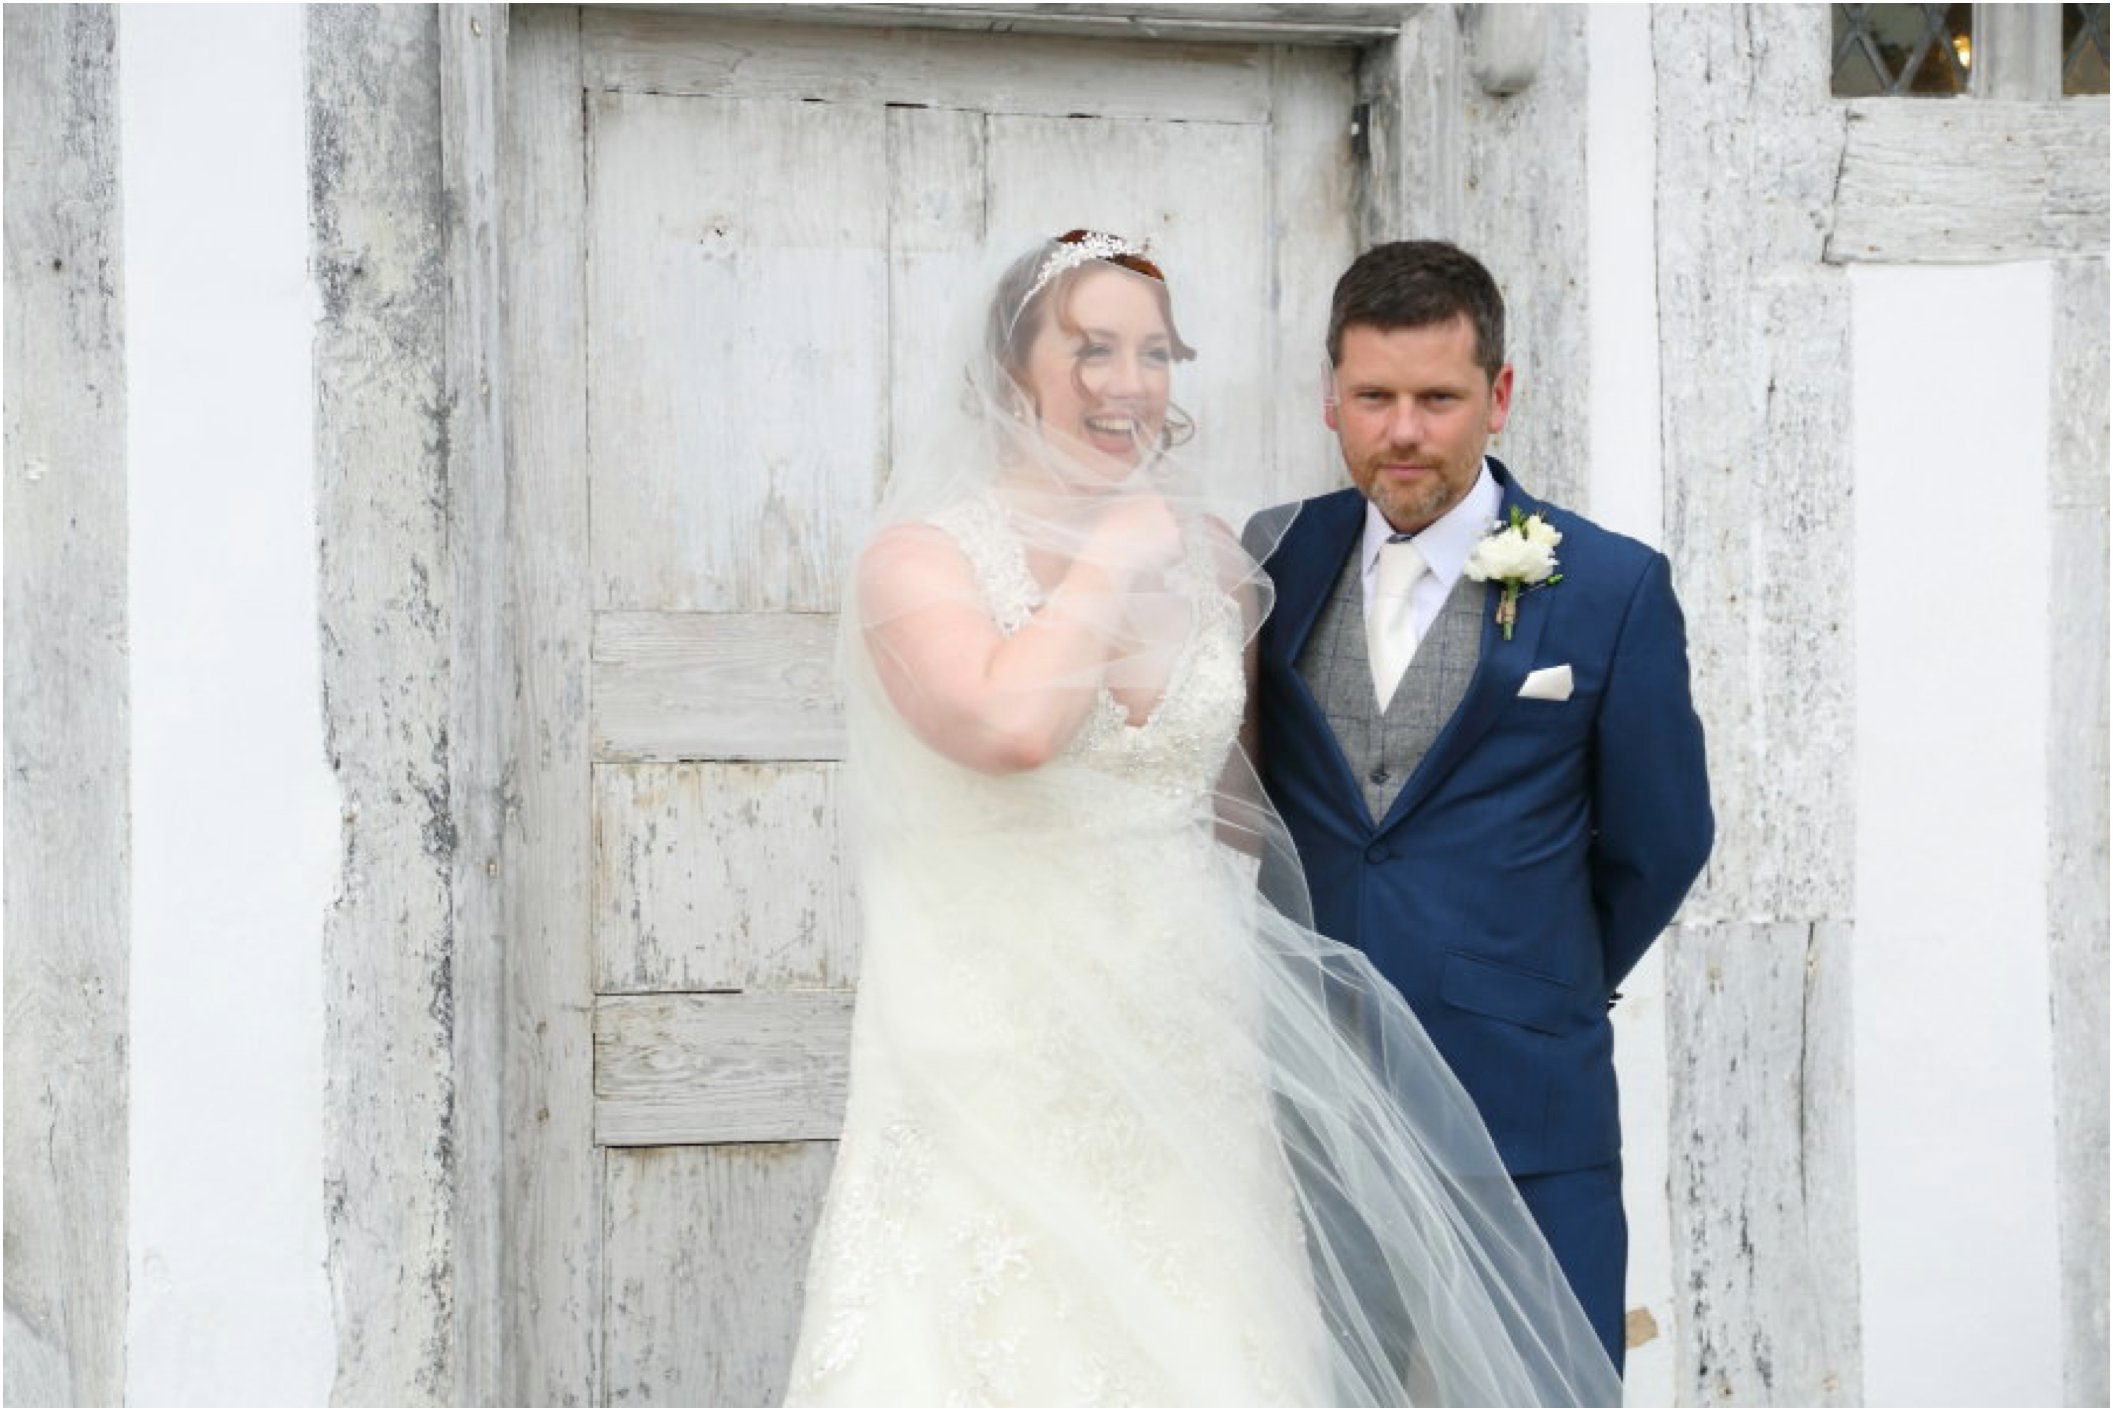 veil caught in the wind at Lavenham wedding, suffolk